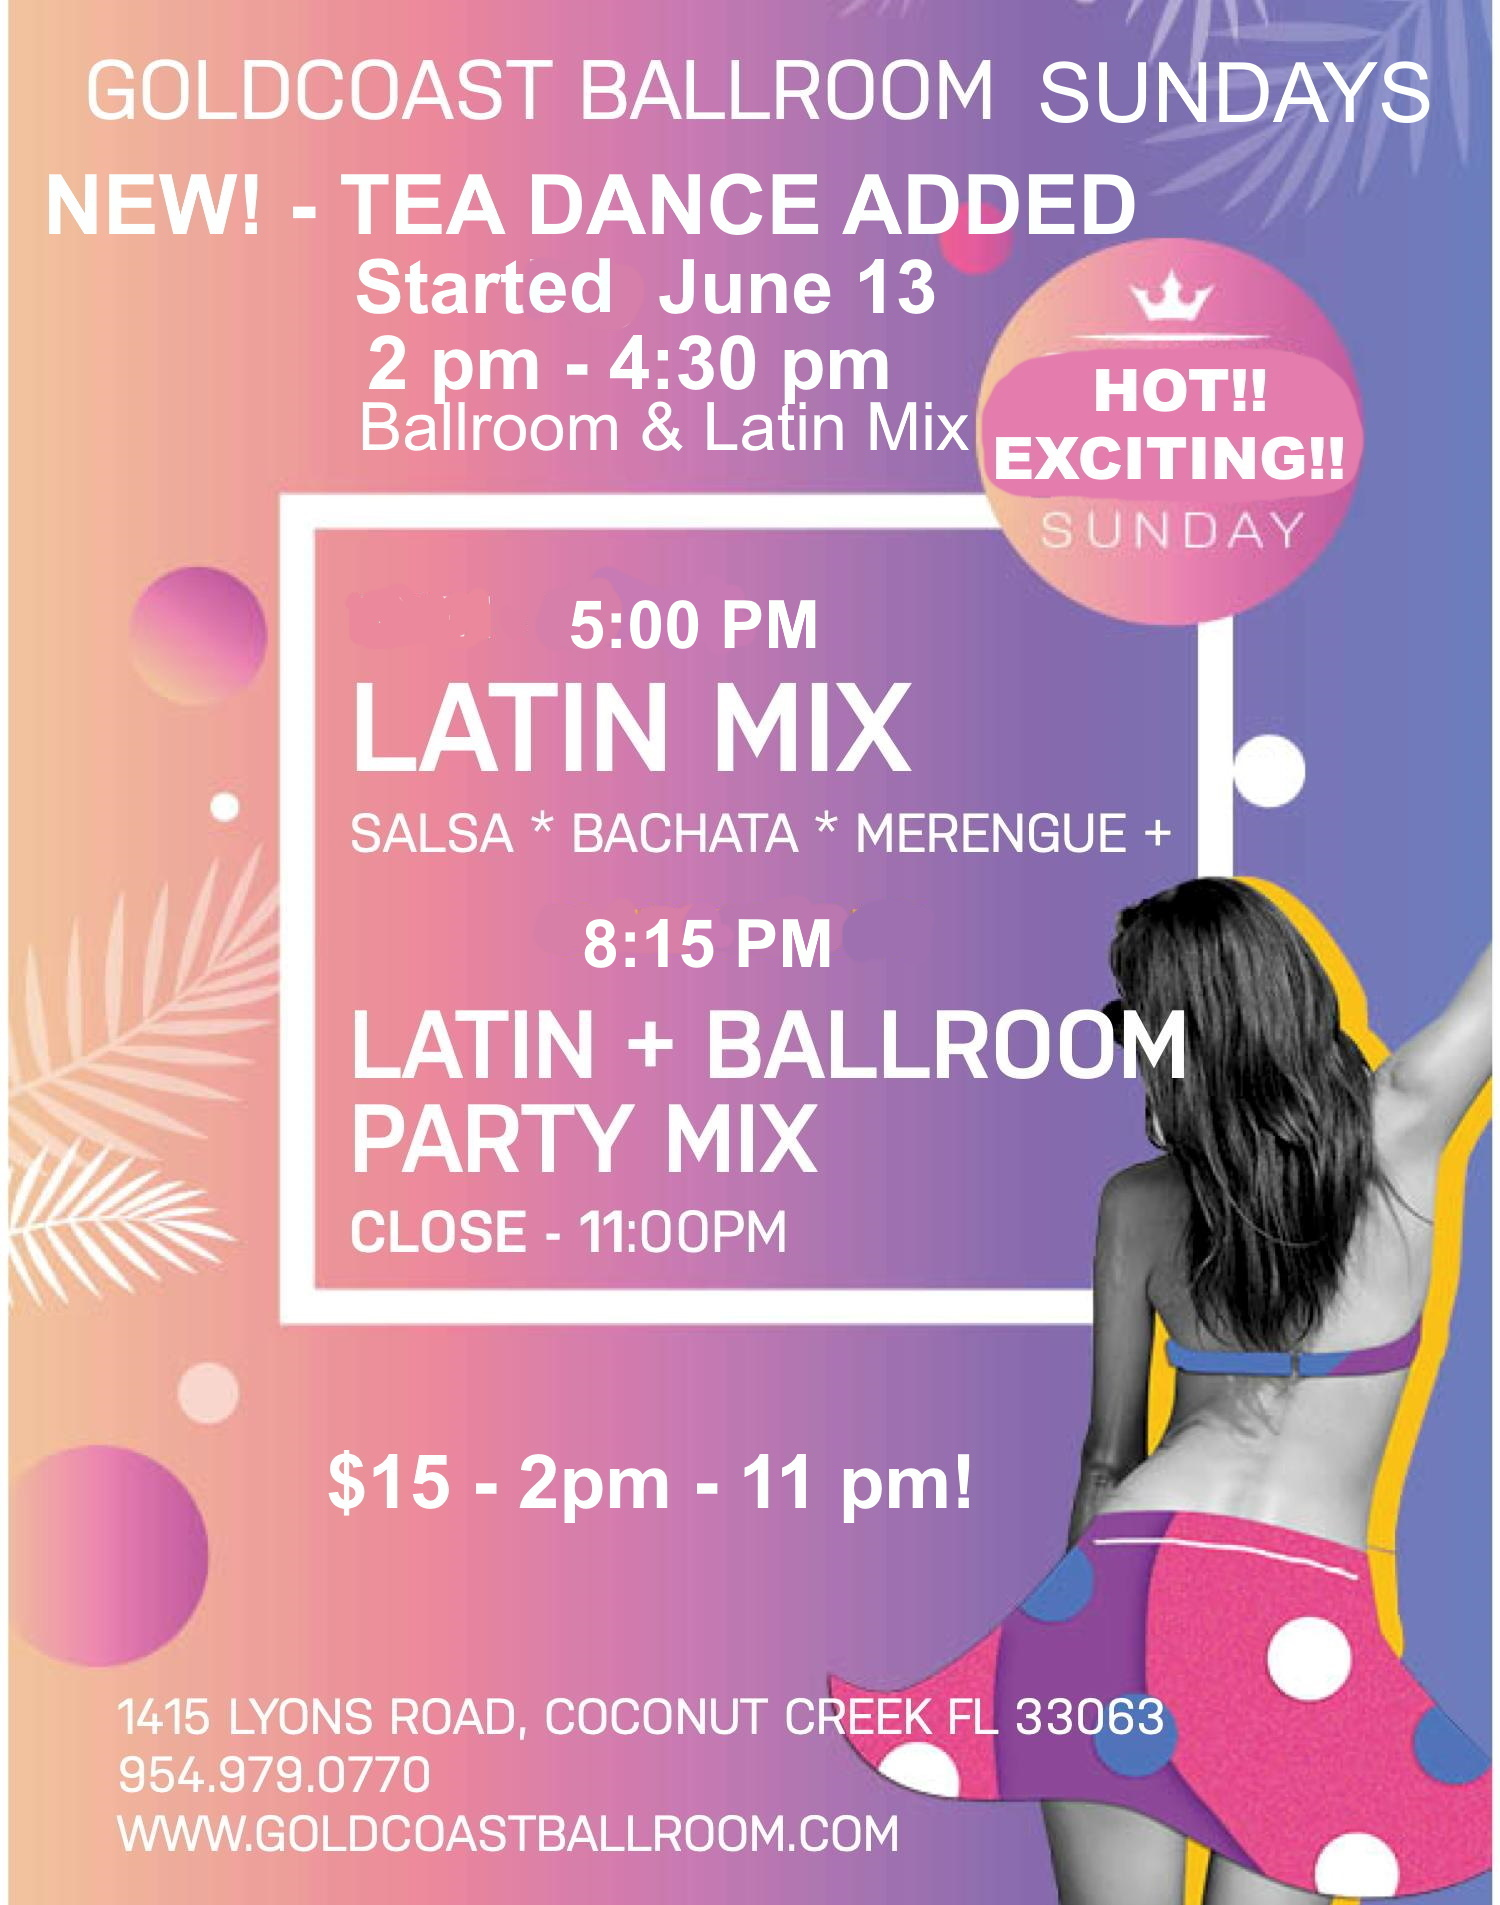 SUNDAY-FORMAT-CHANGE- with Tea Dance Added - Started June 13 - 5 pm Latin, 8:15 pm Ballroom